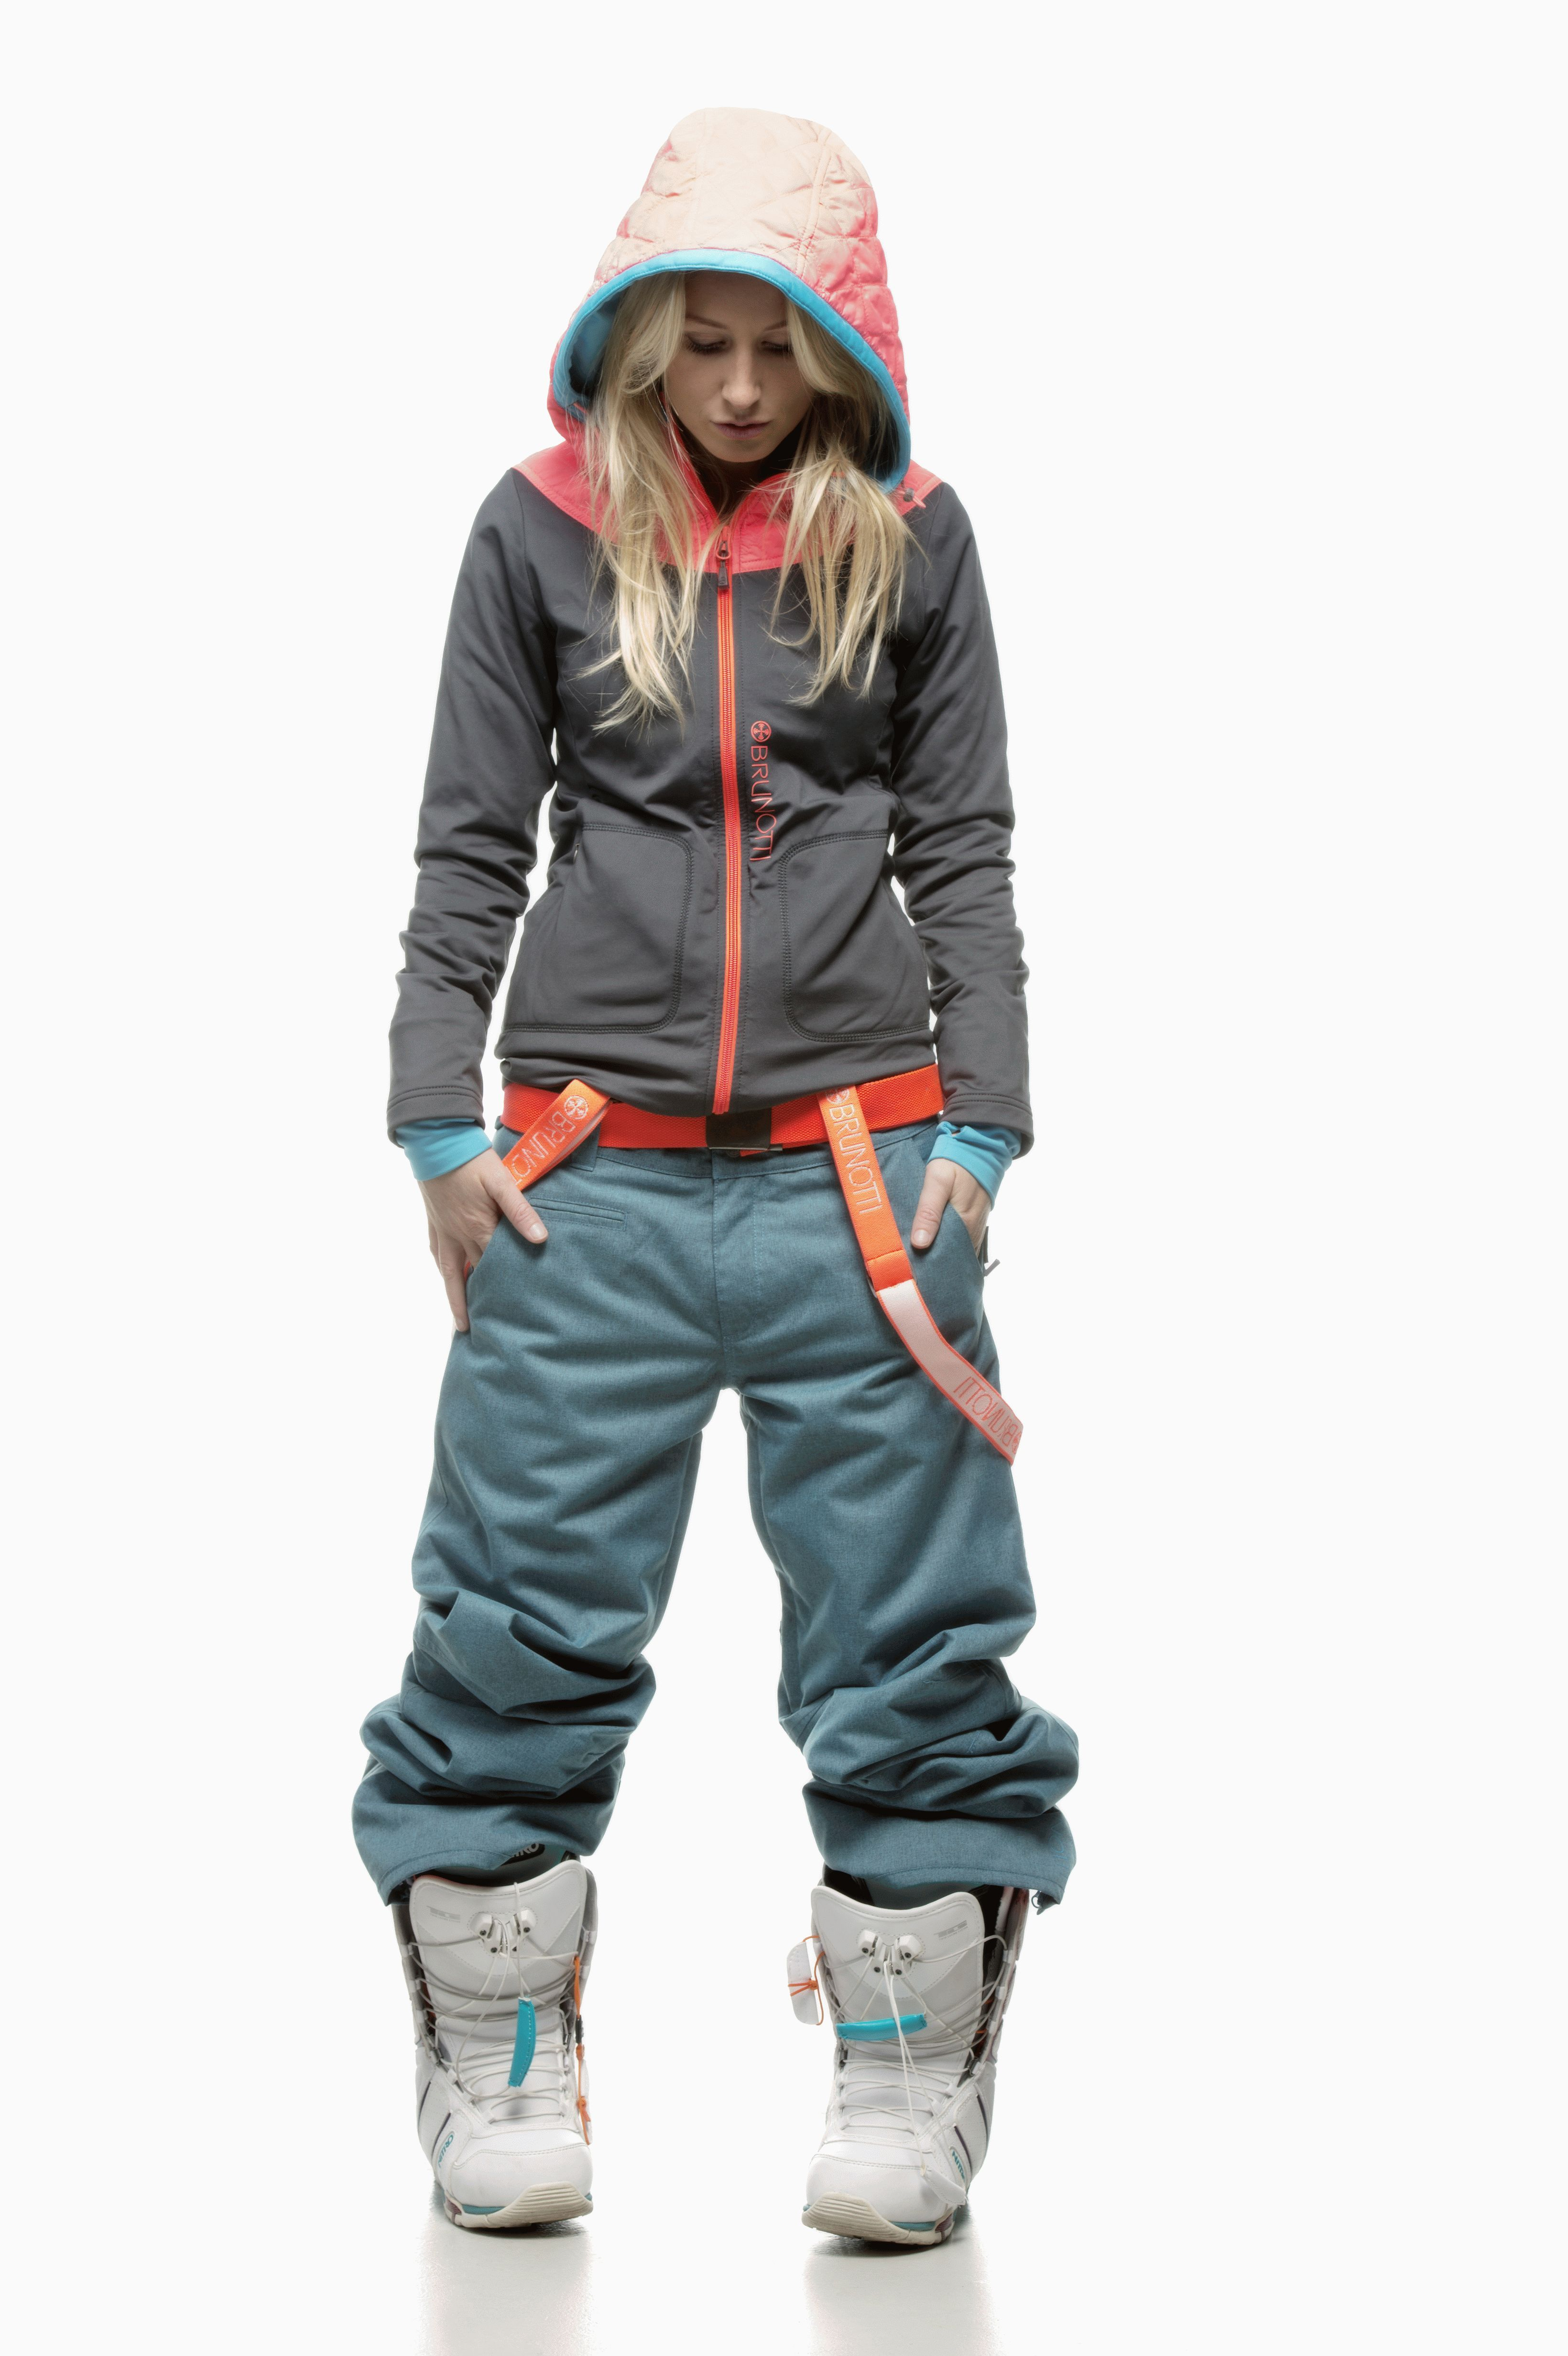 72a15c01131 cool snowboard look -- I can t wait to go snowboarding!